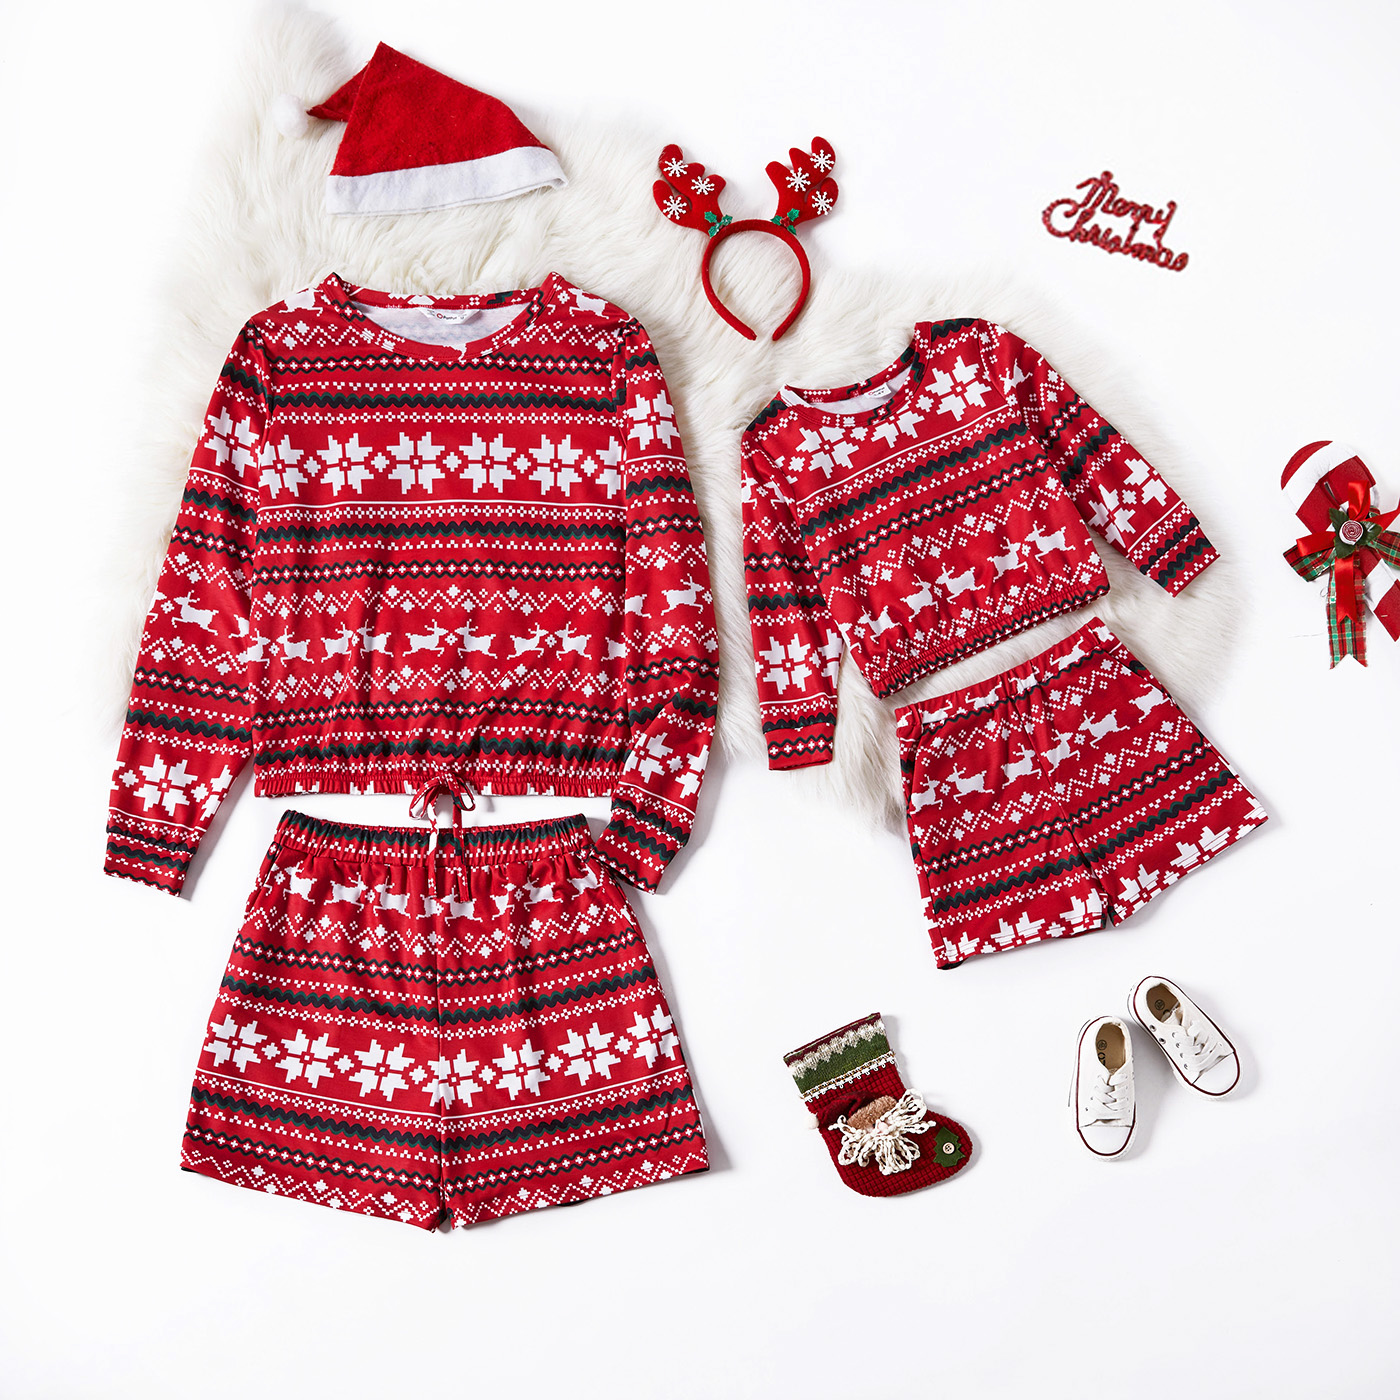 Christmas All Over Reindeer Print Long-sleeve Sweatshirts and Shorts Sets for Mom and Me